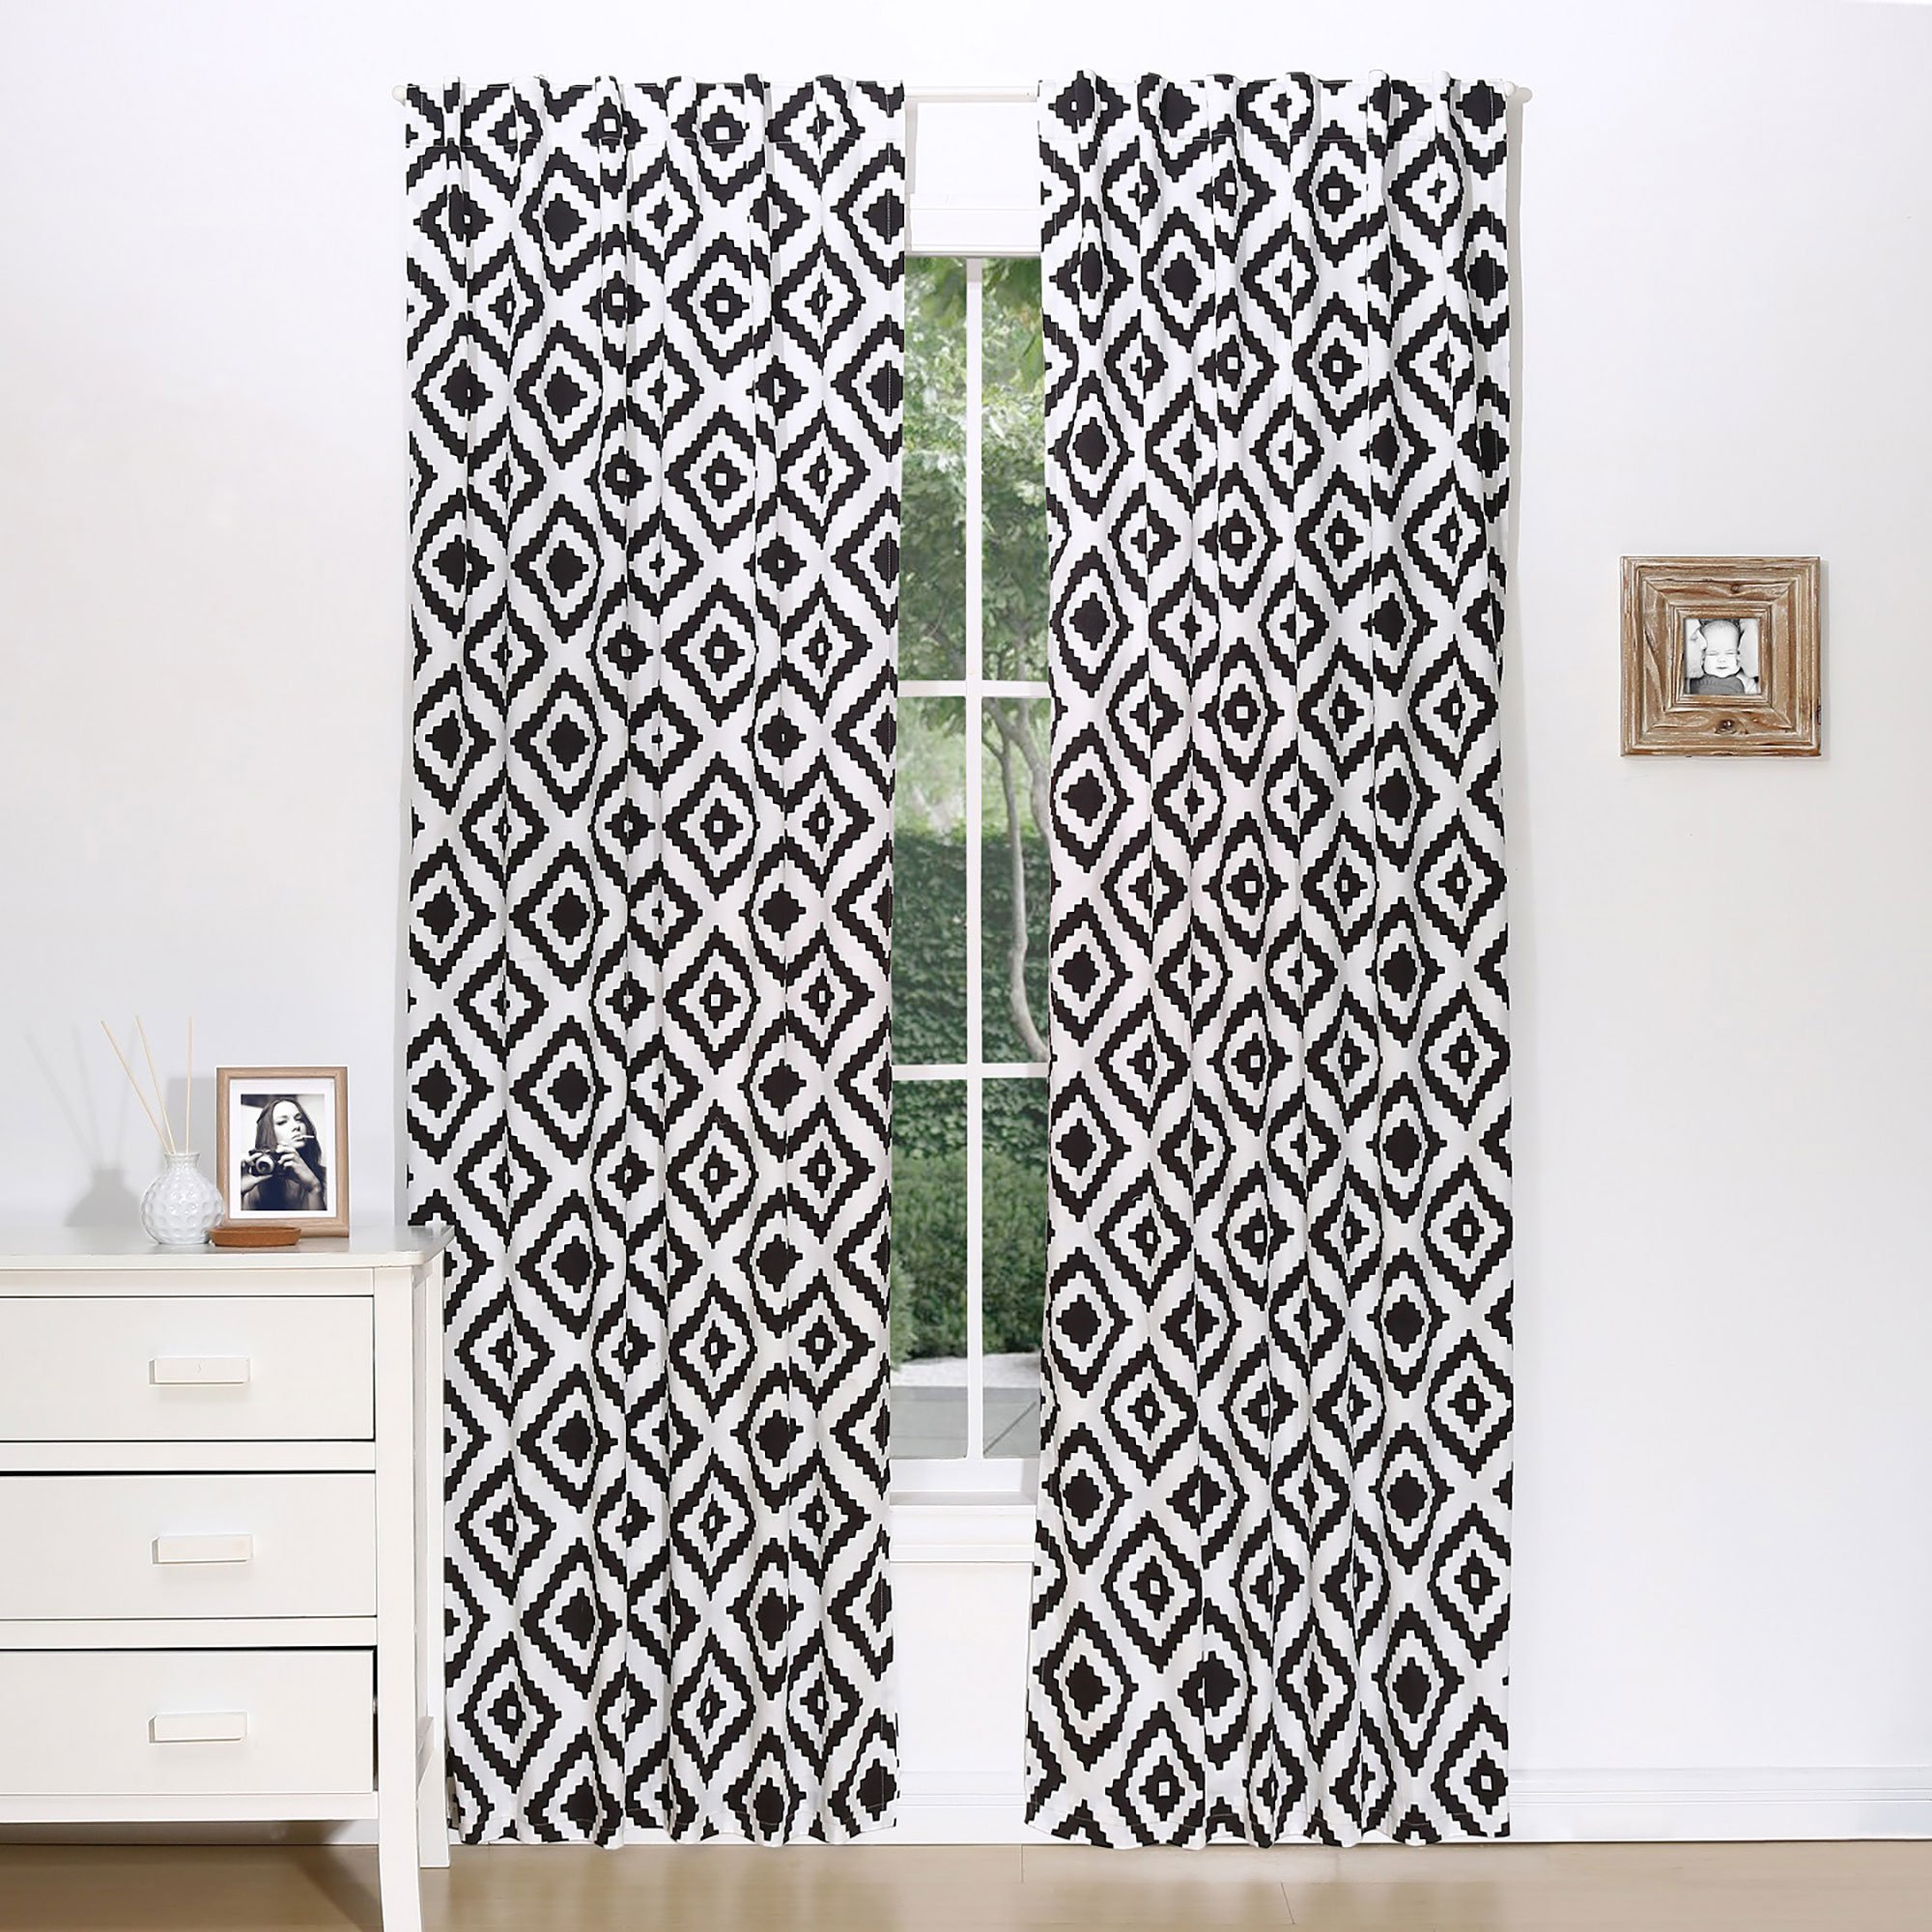 Black Diamond Tile Print Window Drapery Panels - Set of Two 84 by 42 Inch Panels by The Peanut Shell